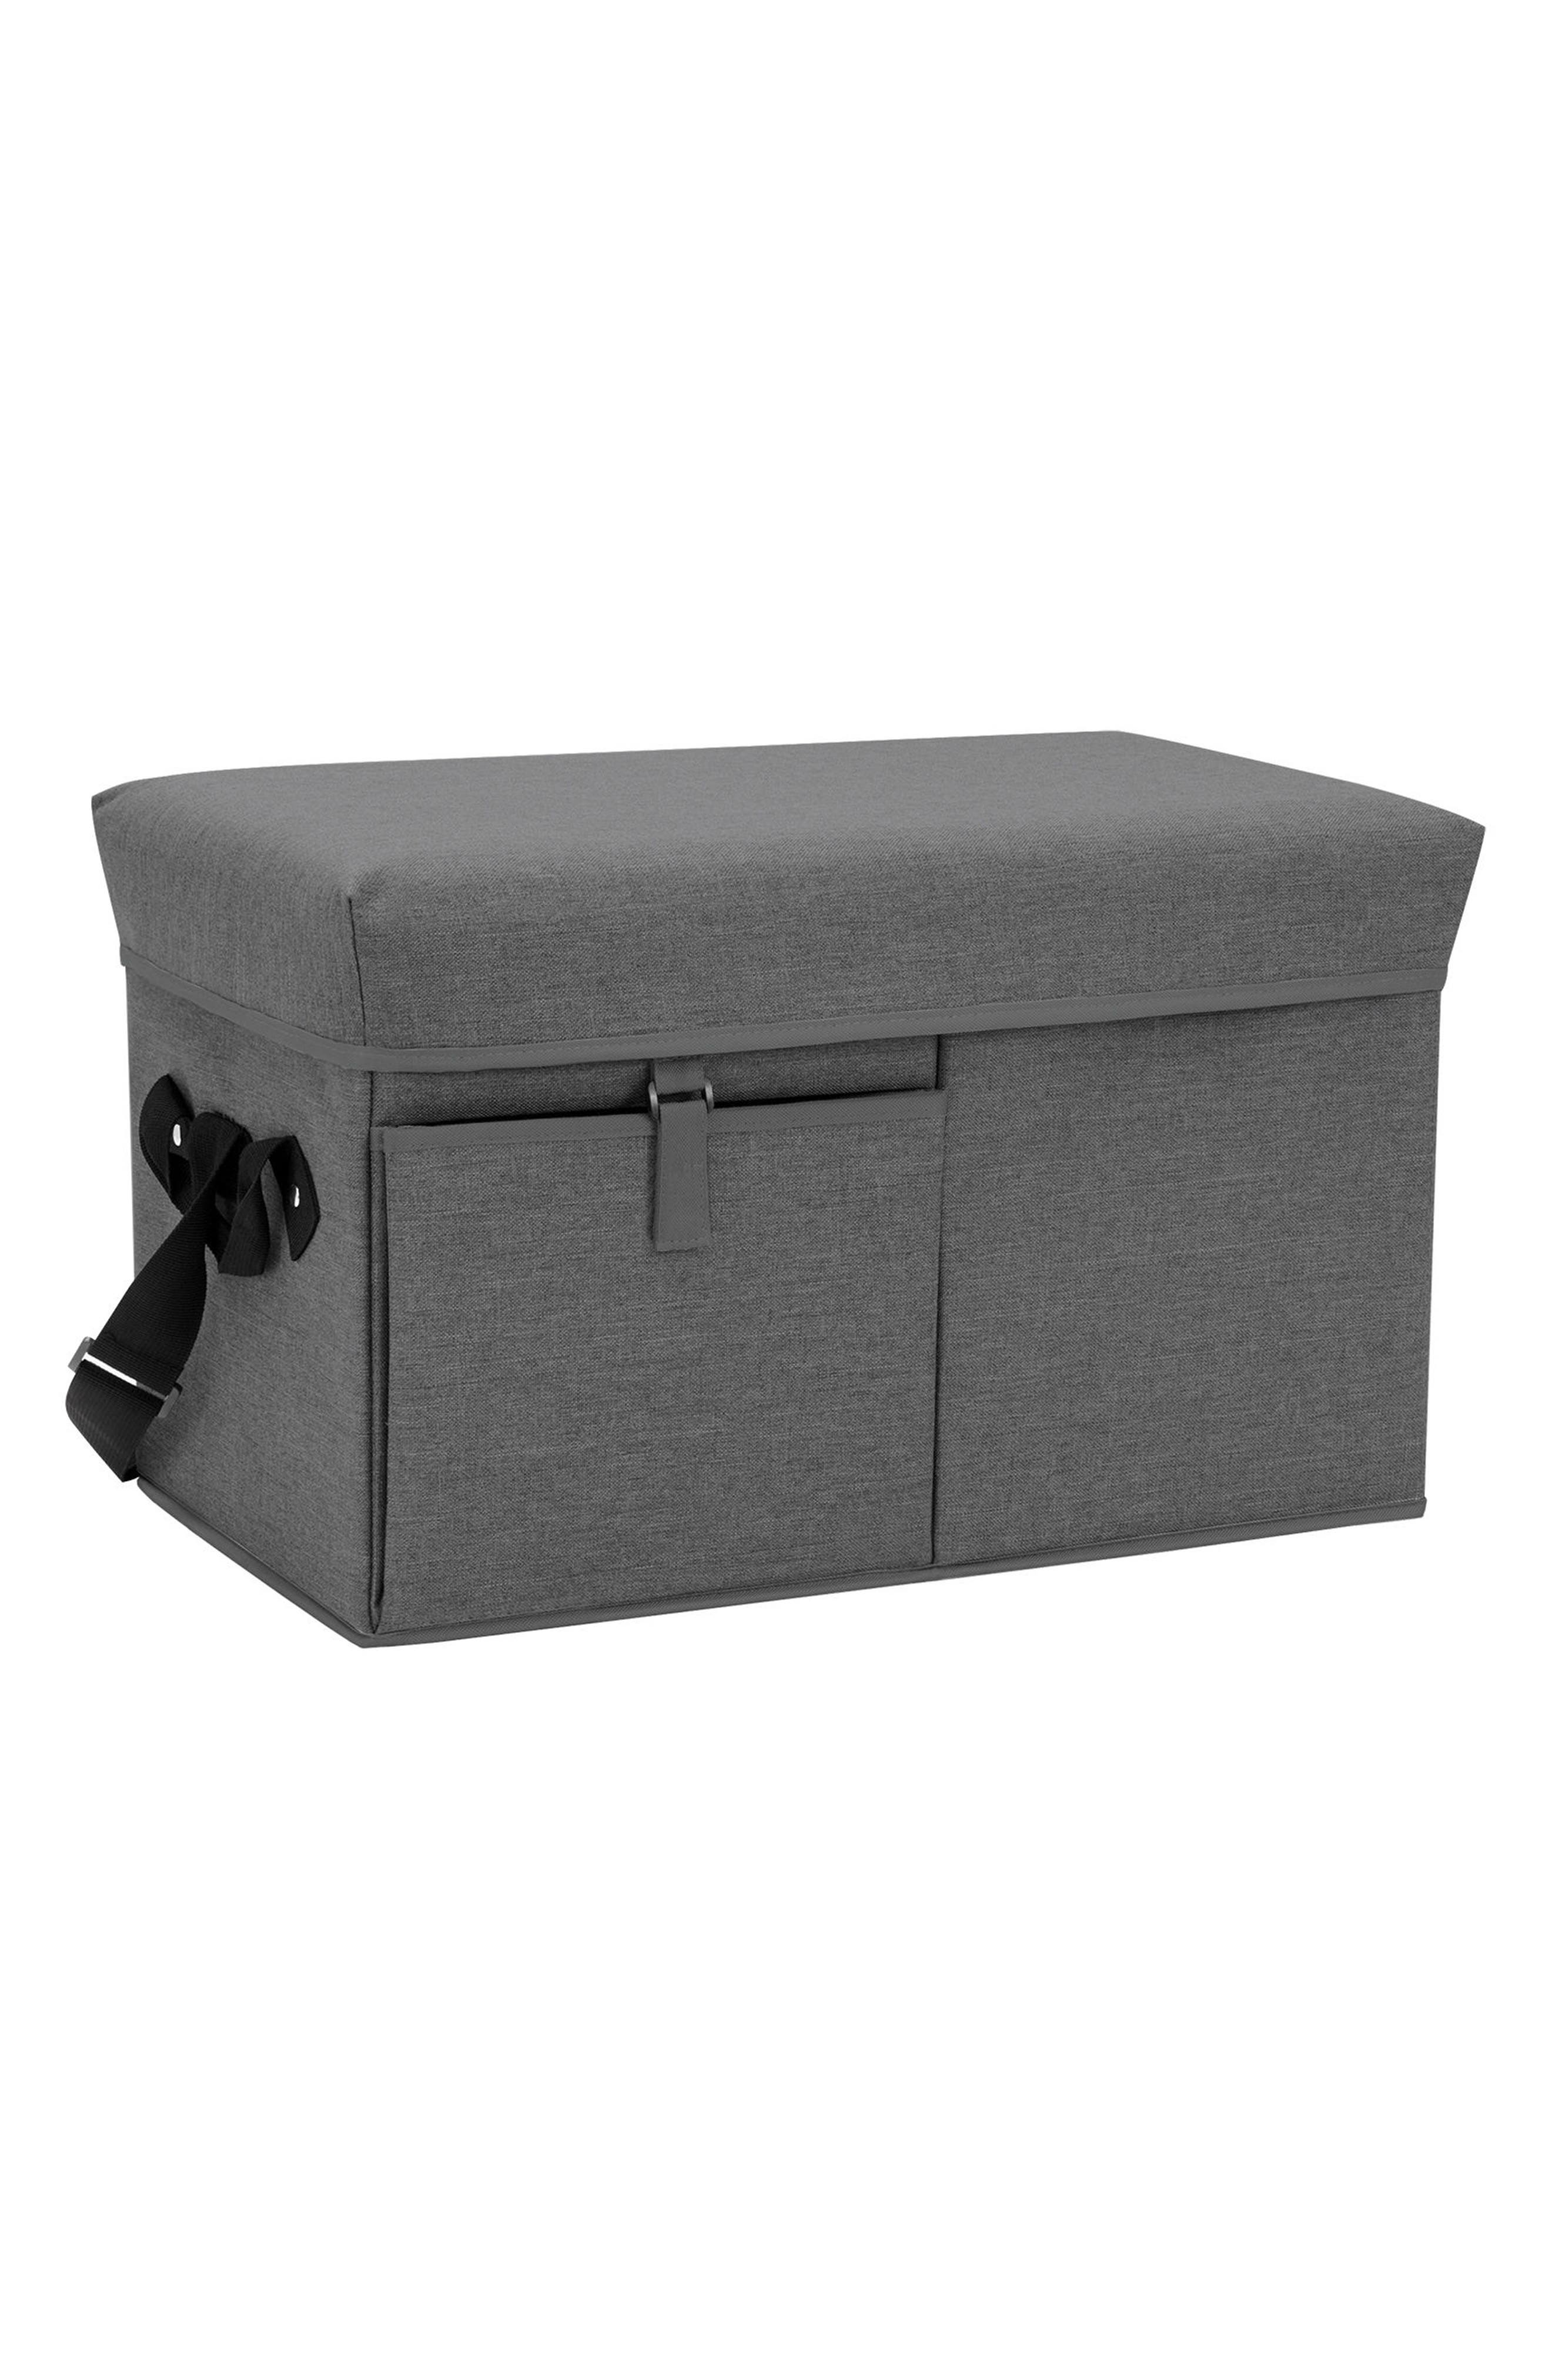 Picnic Time Ottoman Cooler,                             Main thumbnail 1, color,                             020